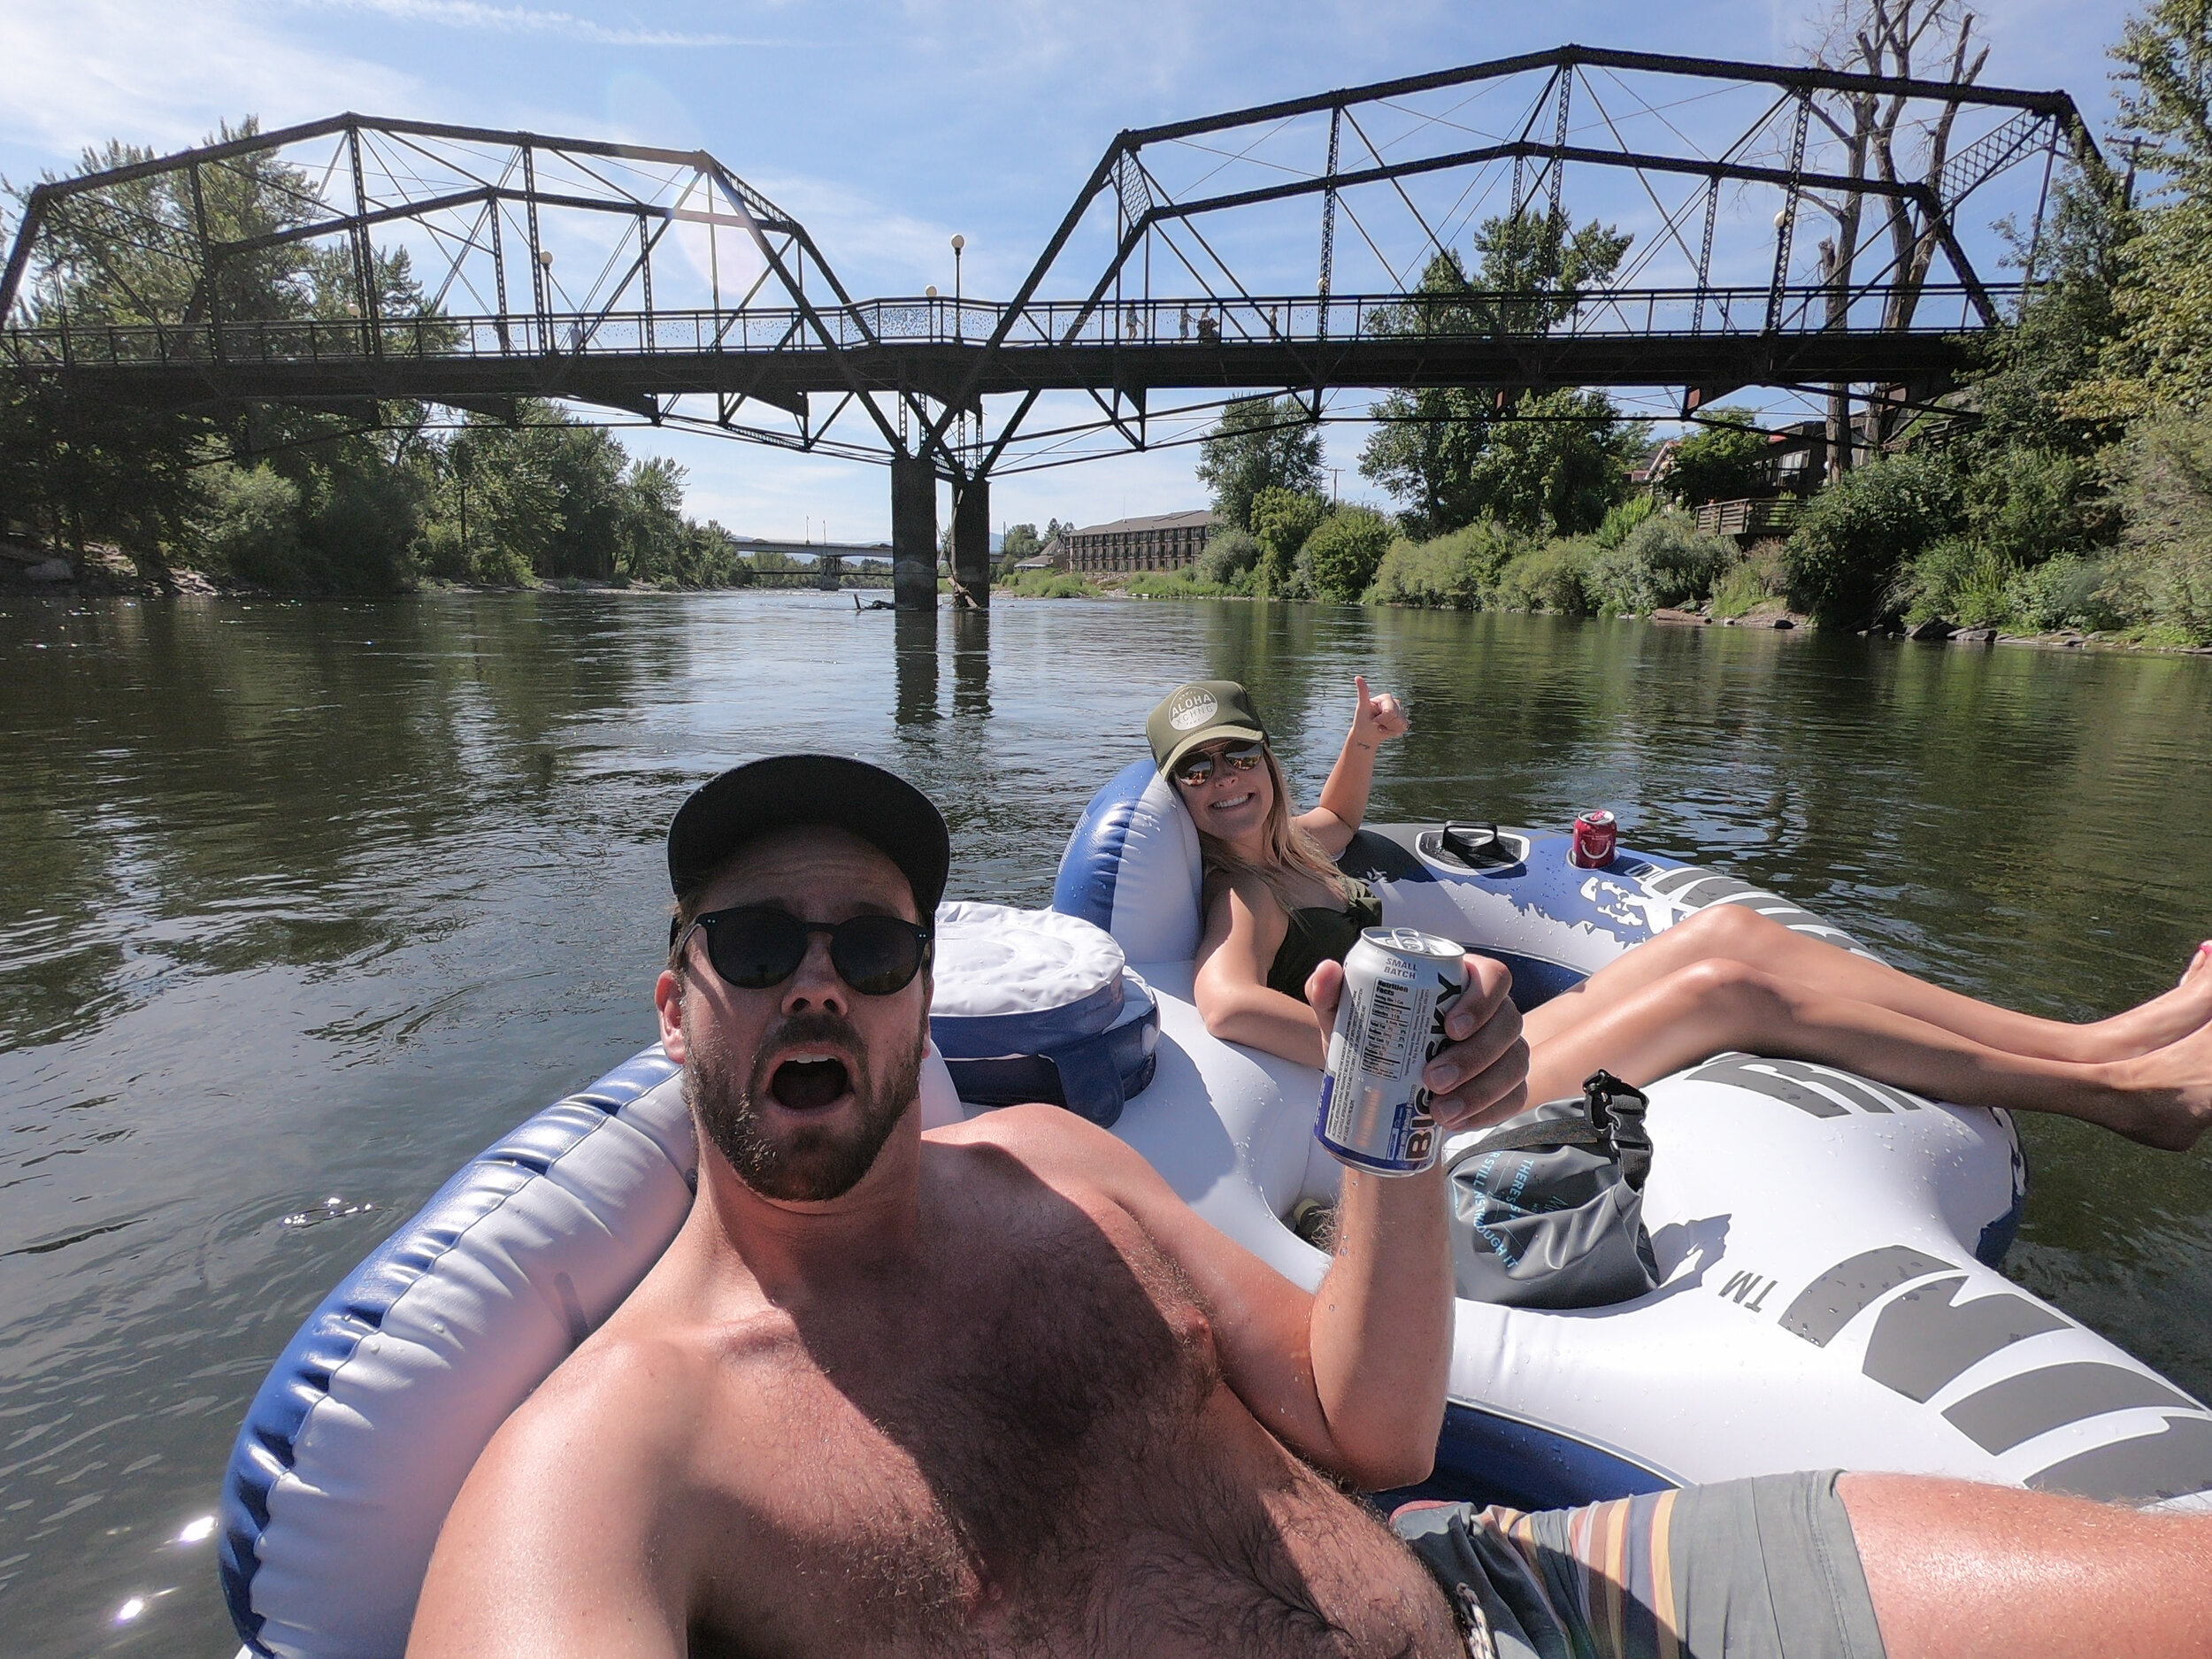 We can't wait to come back for more food, drinks, and river floating!